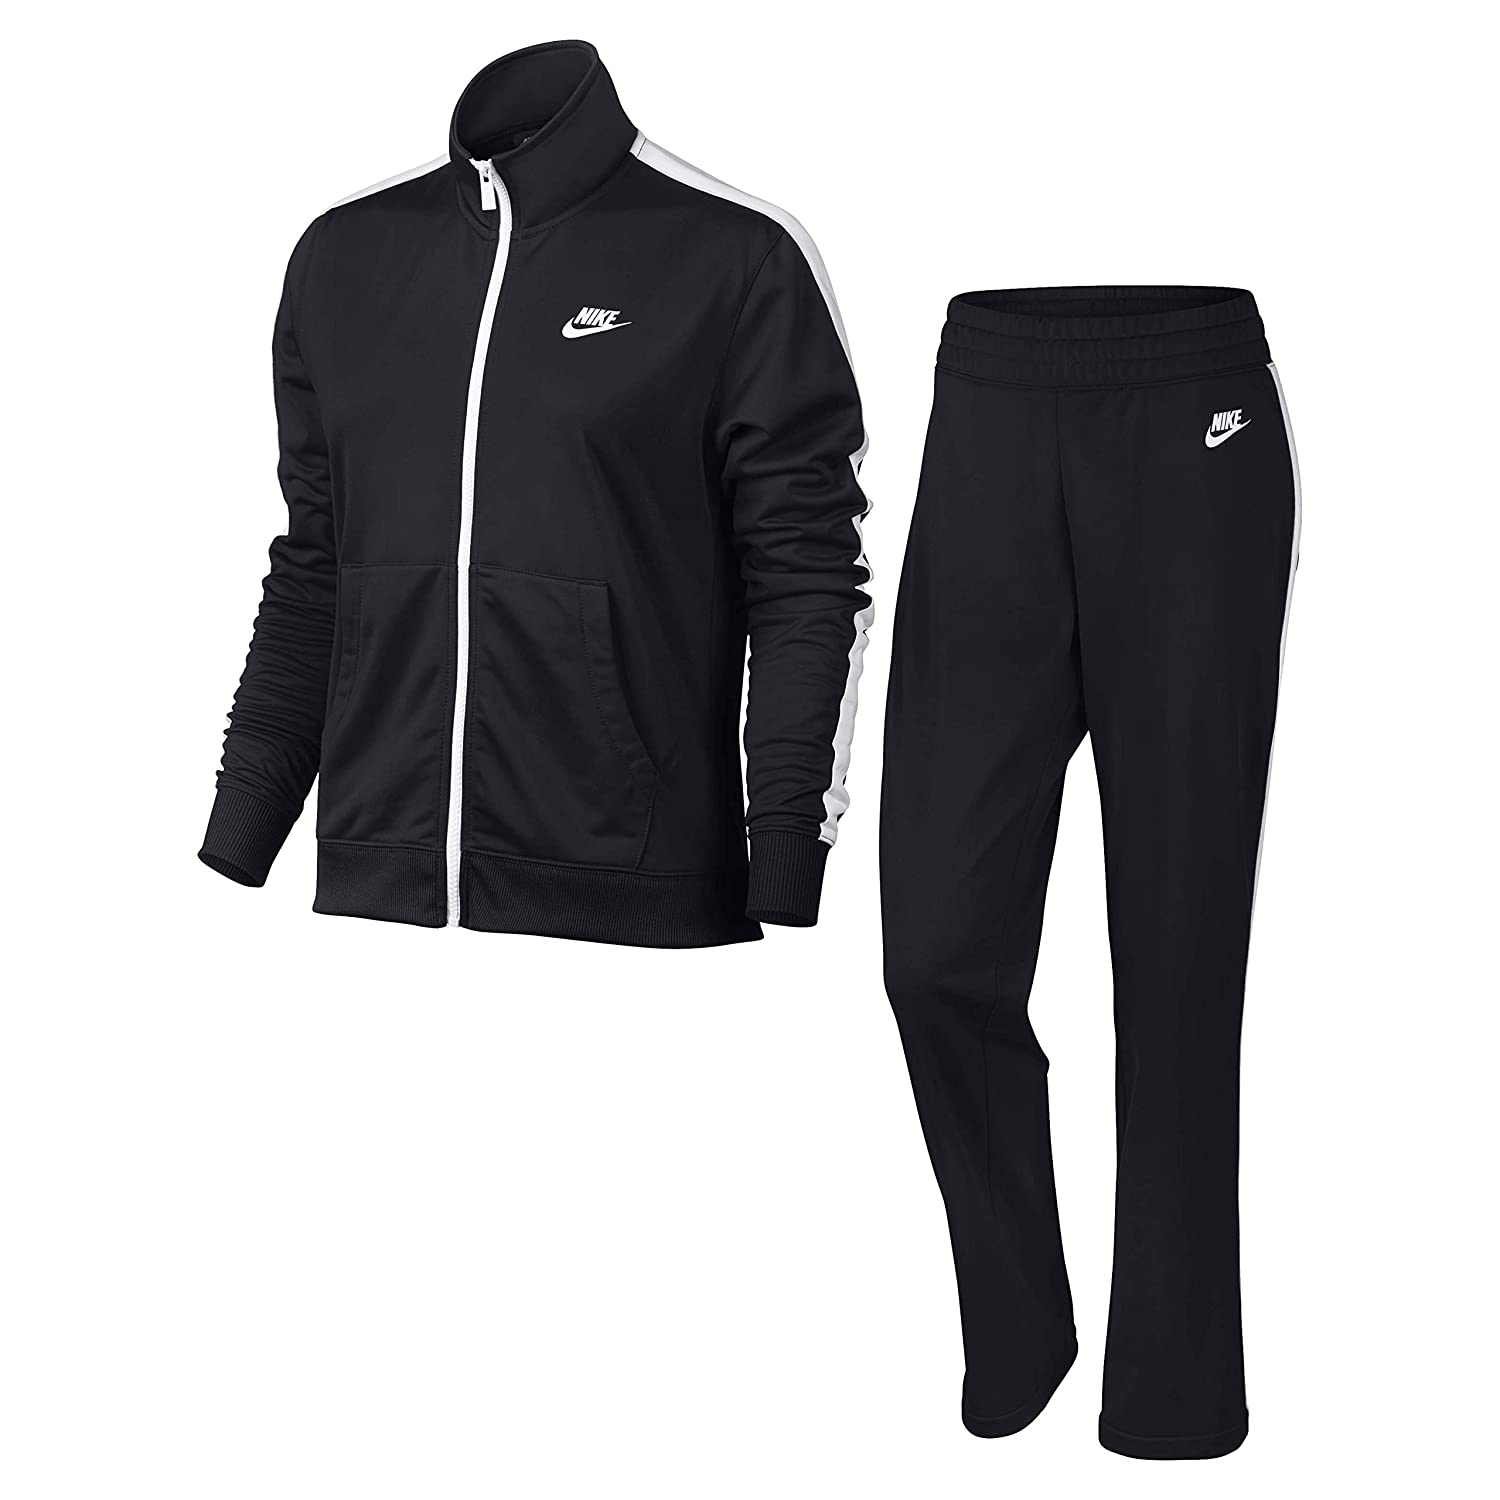 TALLA M. Nike W NSW TRK Suit PK Oh Chándal, Mujer